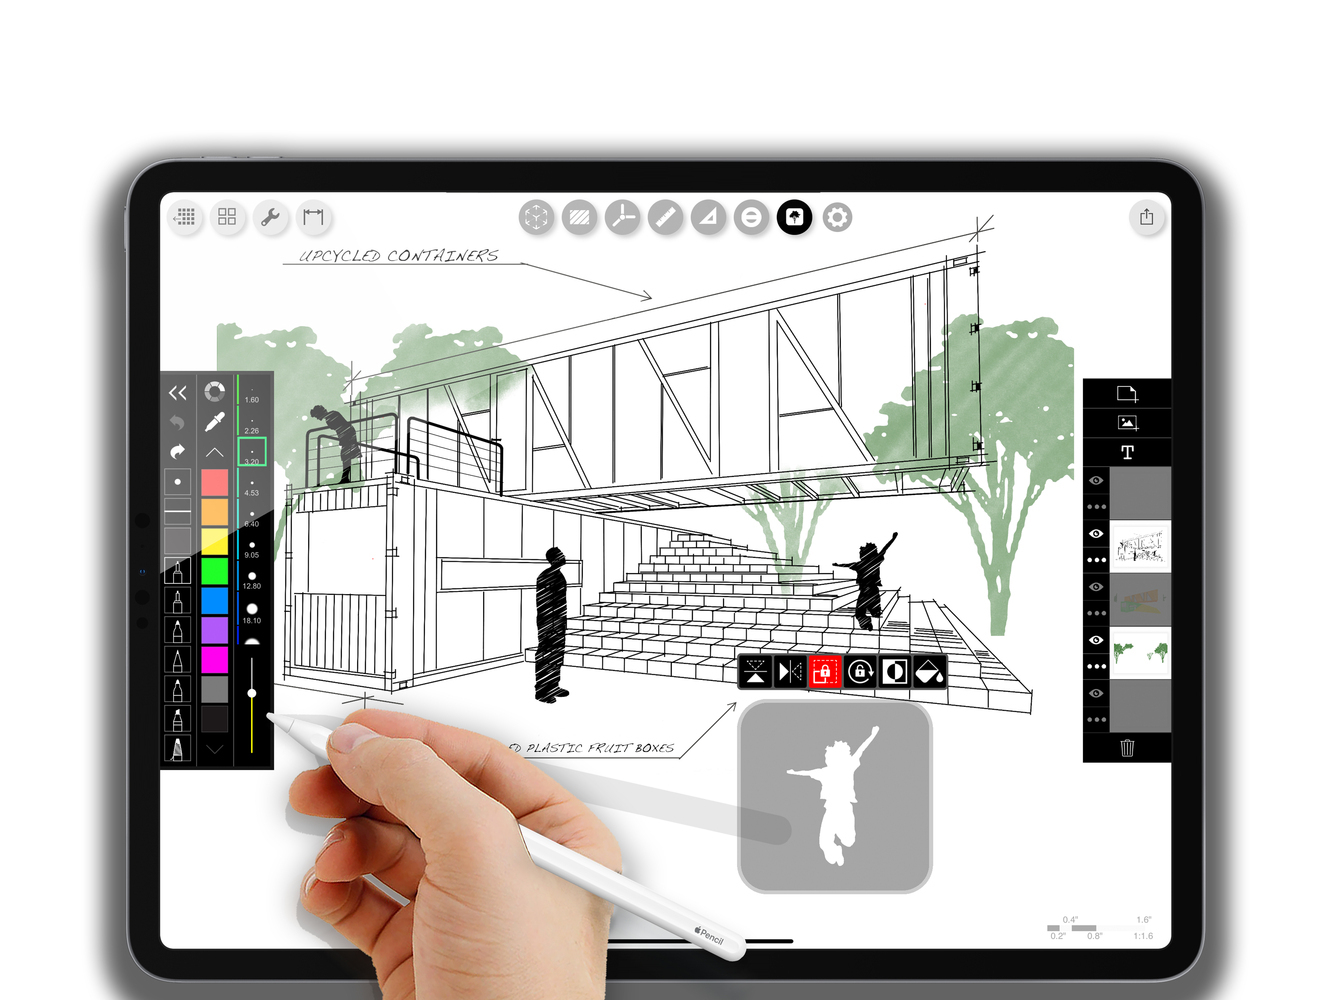 The Top 10 Apps for Architecture | ArchDaily